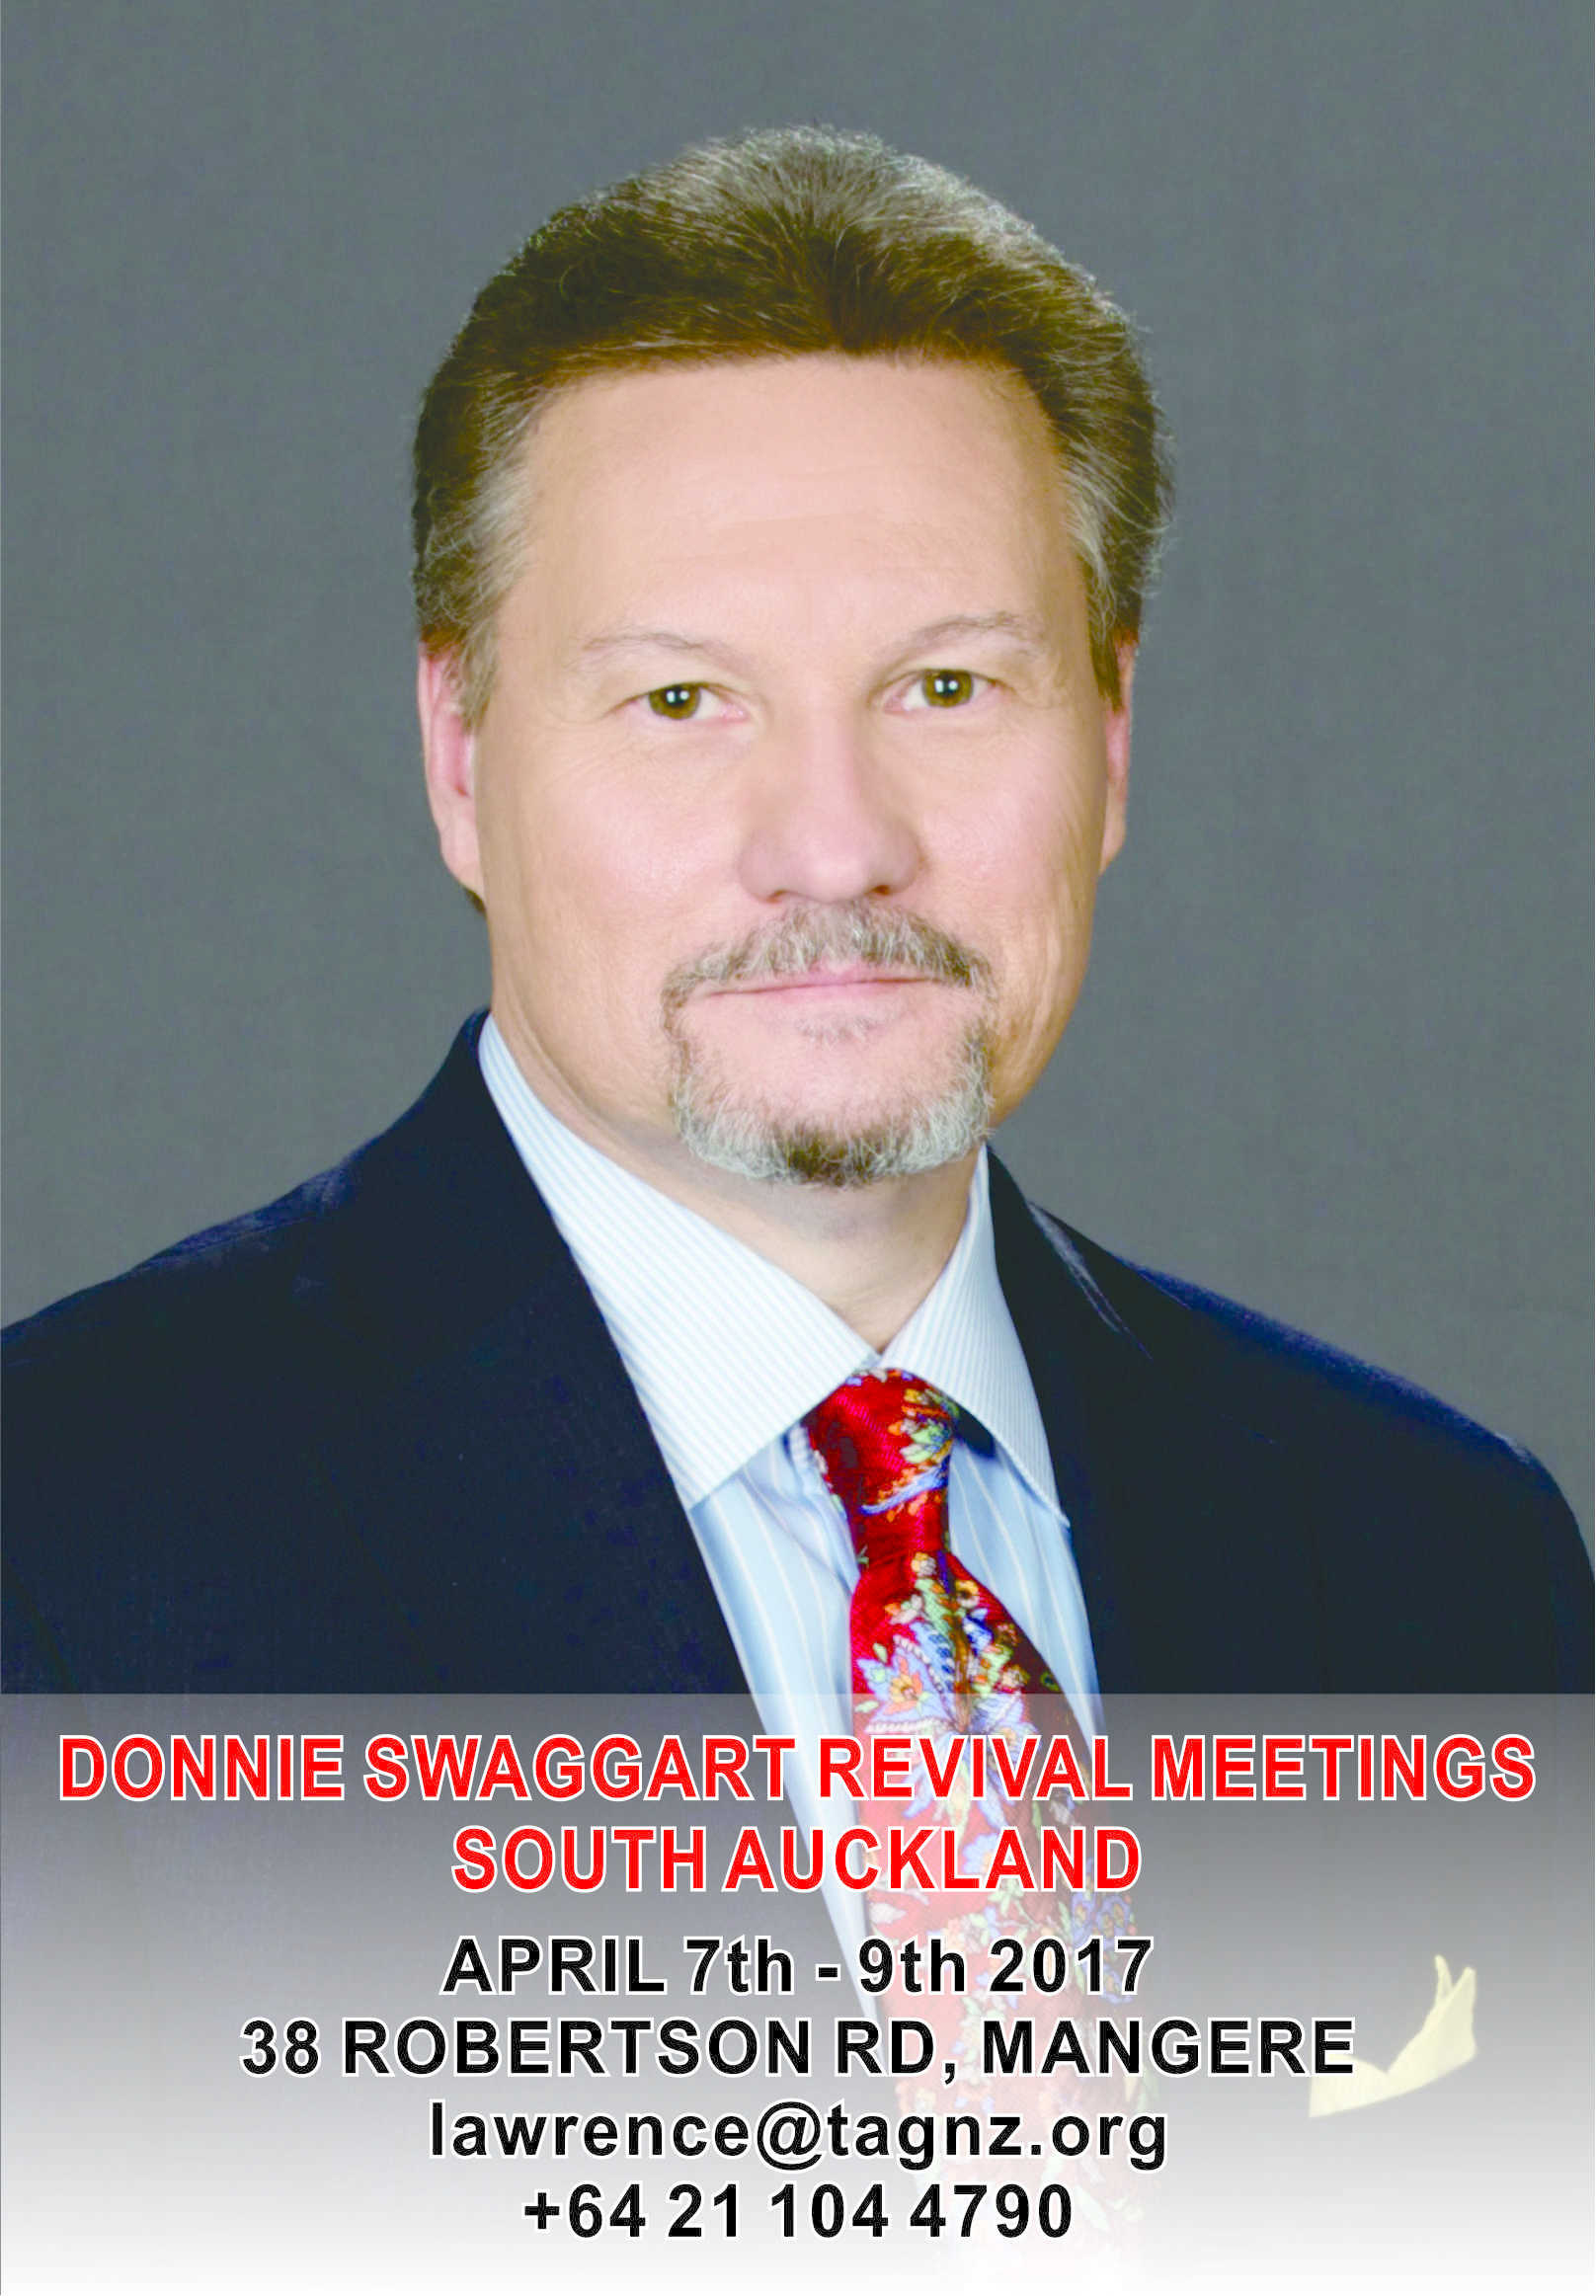 donnie swaggart revival meetings in south auckland